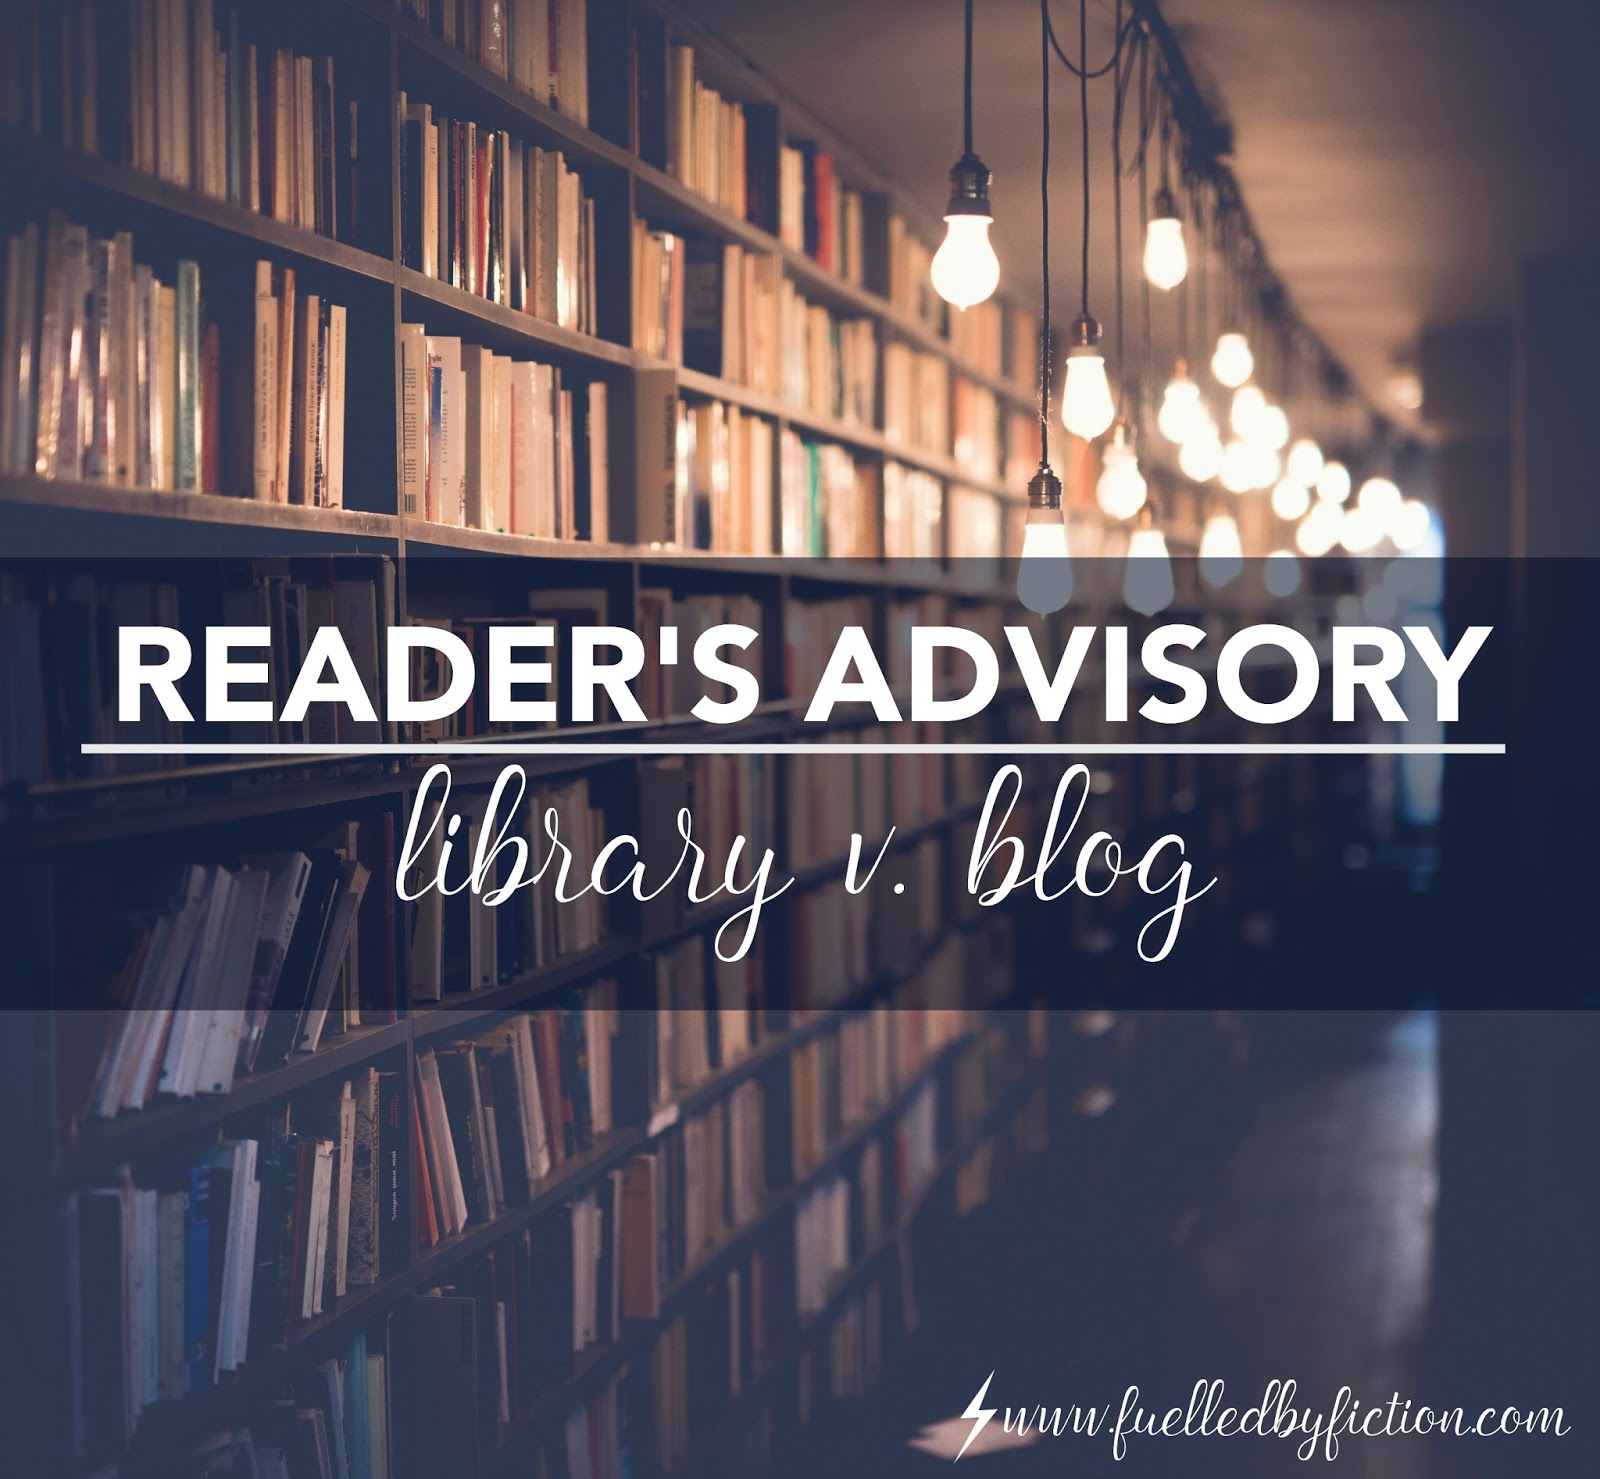 Reader's Advisory Library versus Blogging